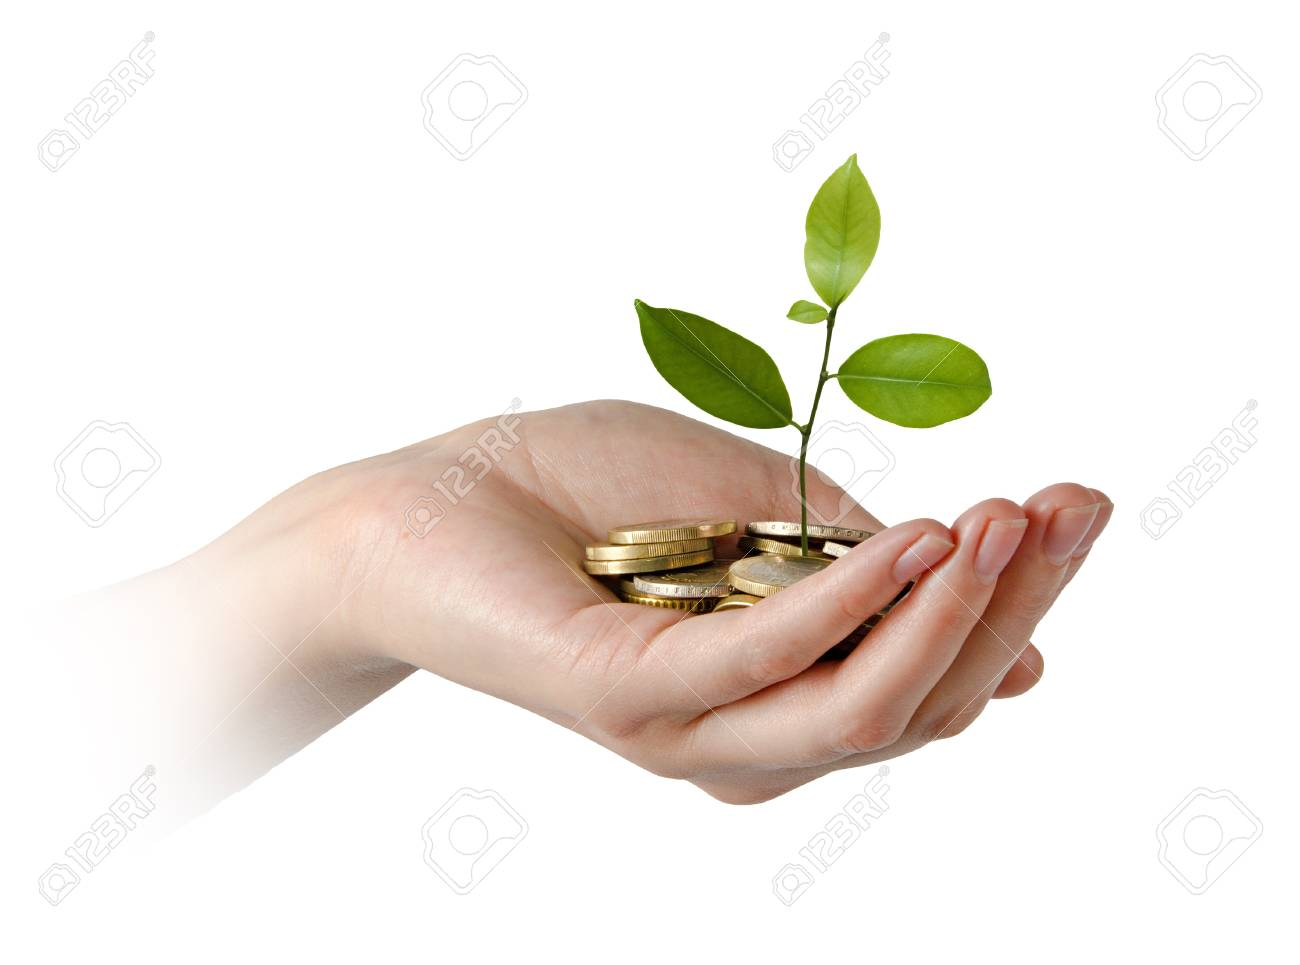 Investing to green business Stock Photo - 16759622